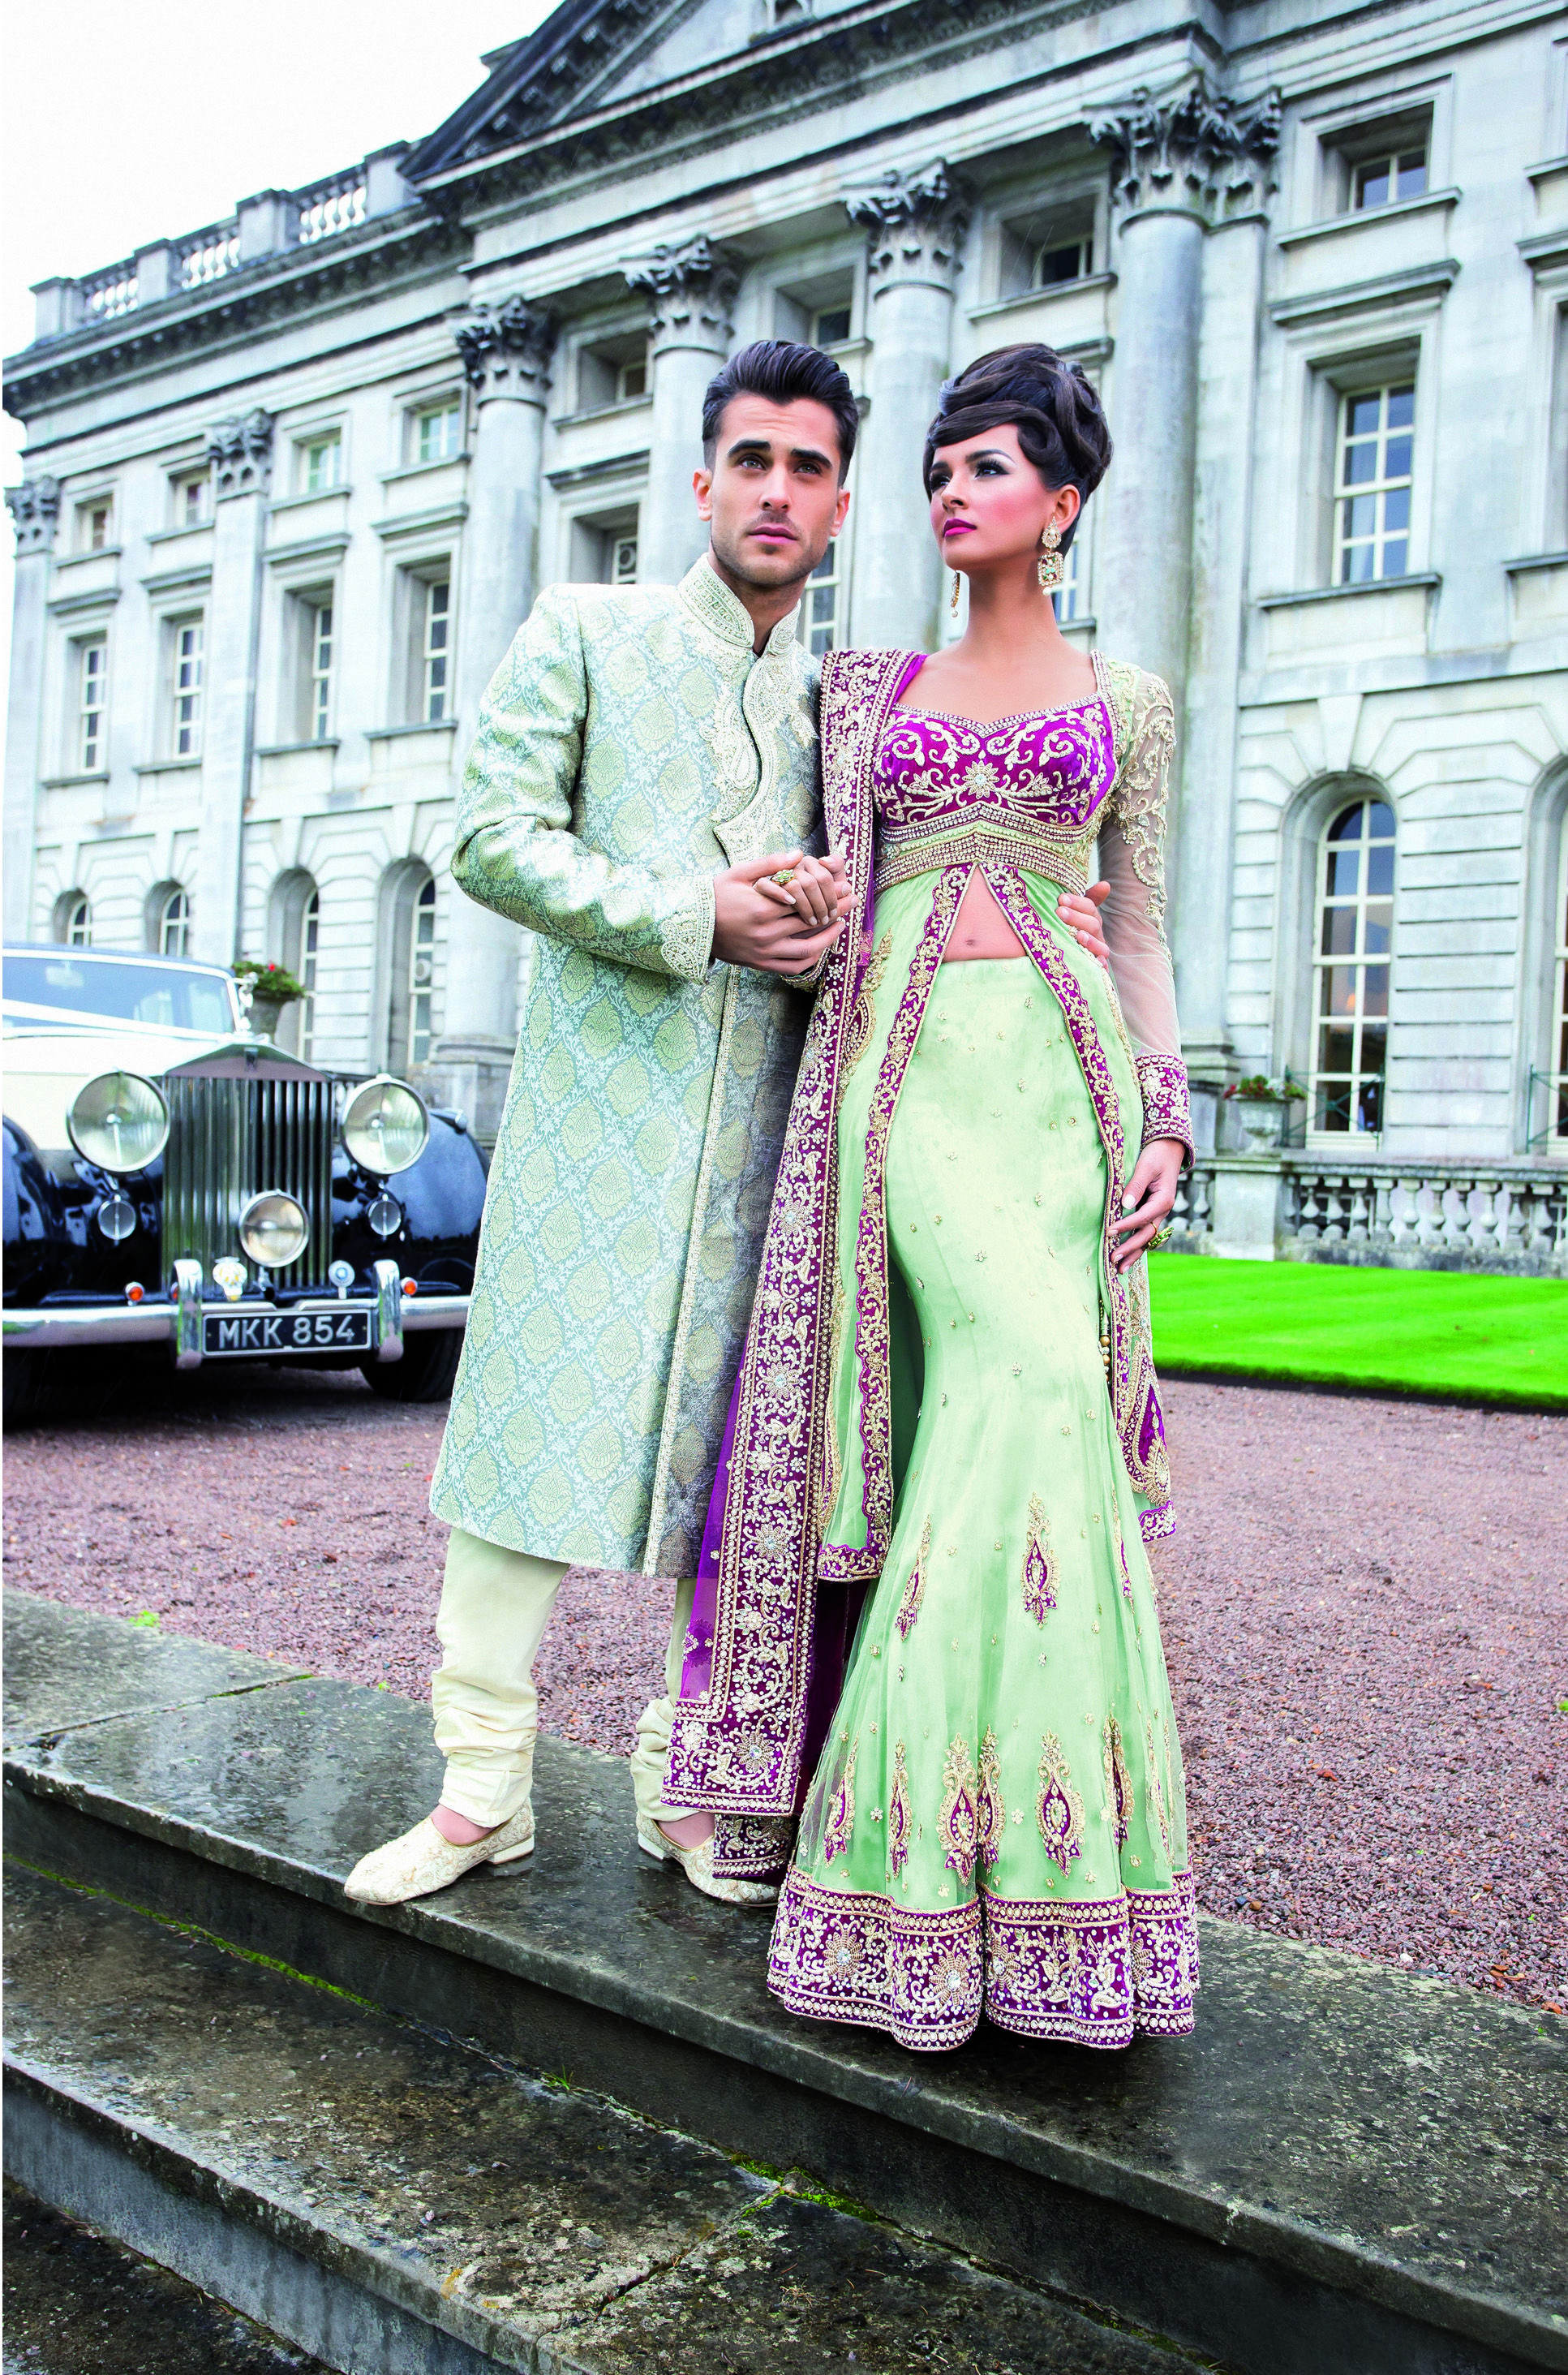 Colour coordinated, mint green and purple Asian wedding gown and Sherwani - Traditions Online http://www.traditionsonline.co.uk/